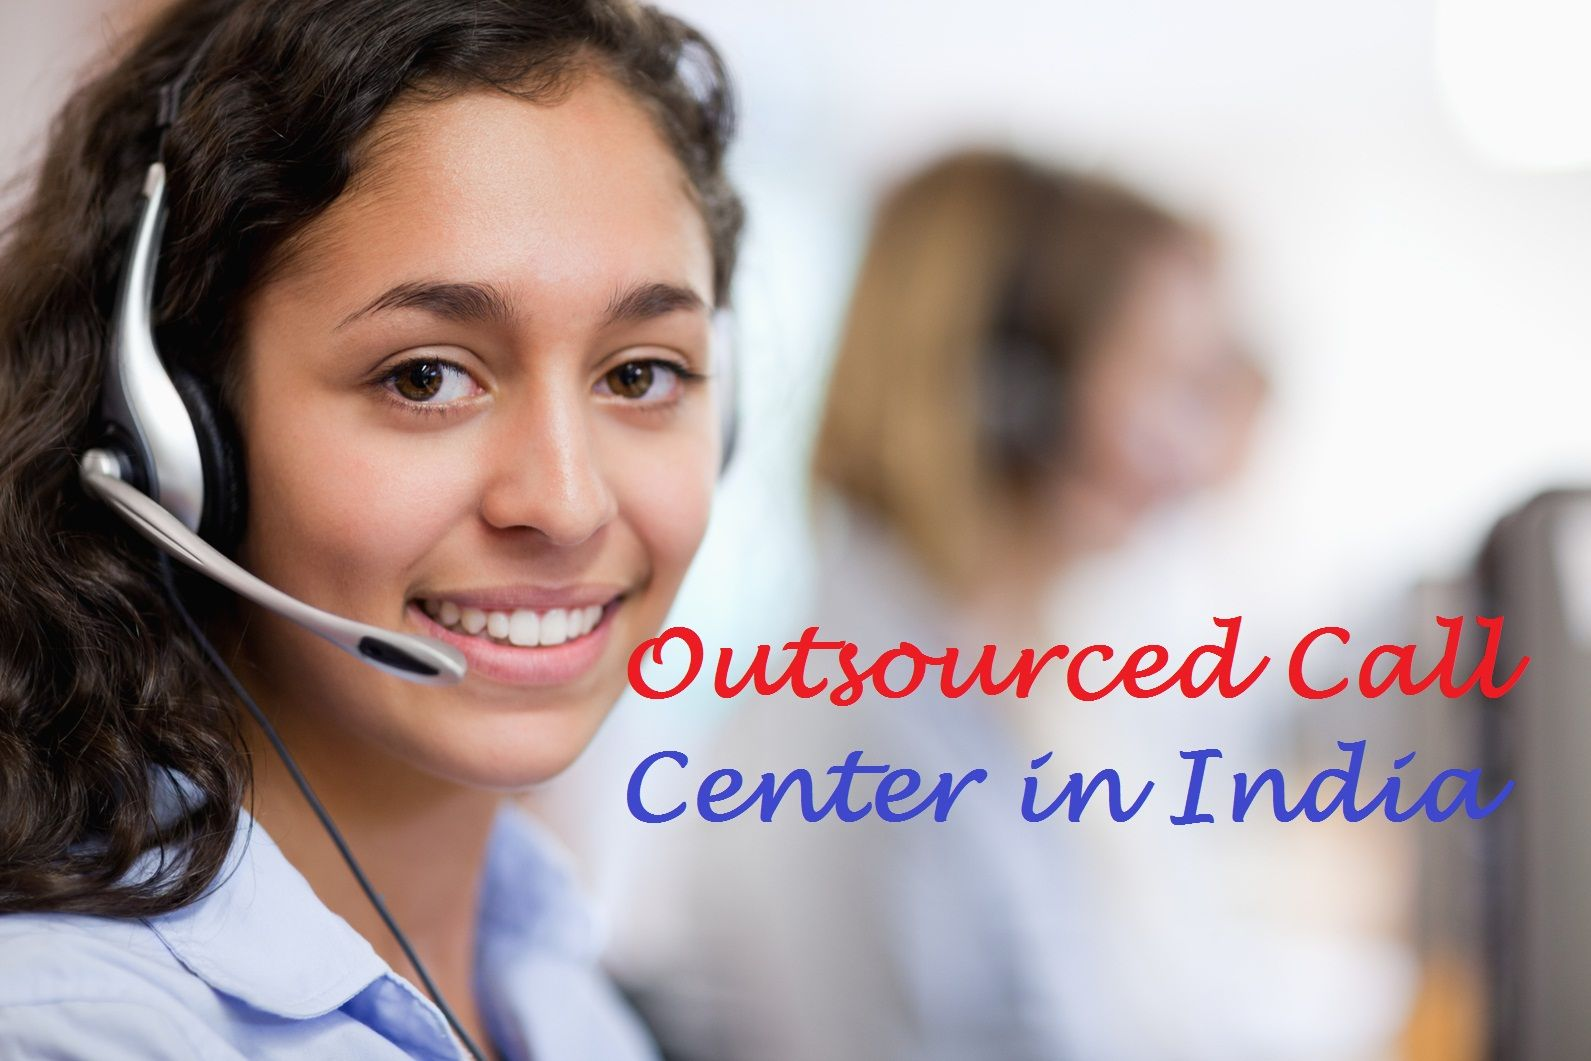 Call2customers is an outsourced call center in India which